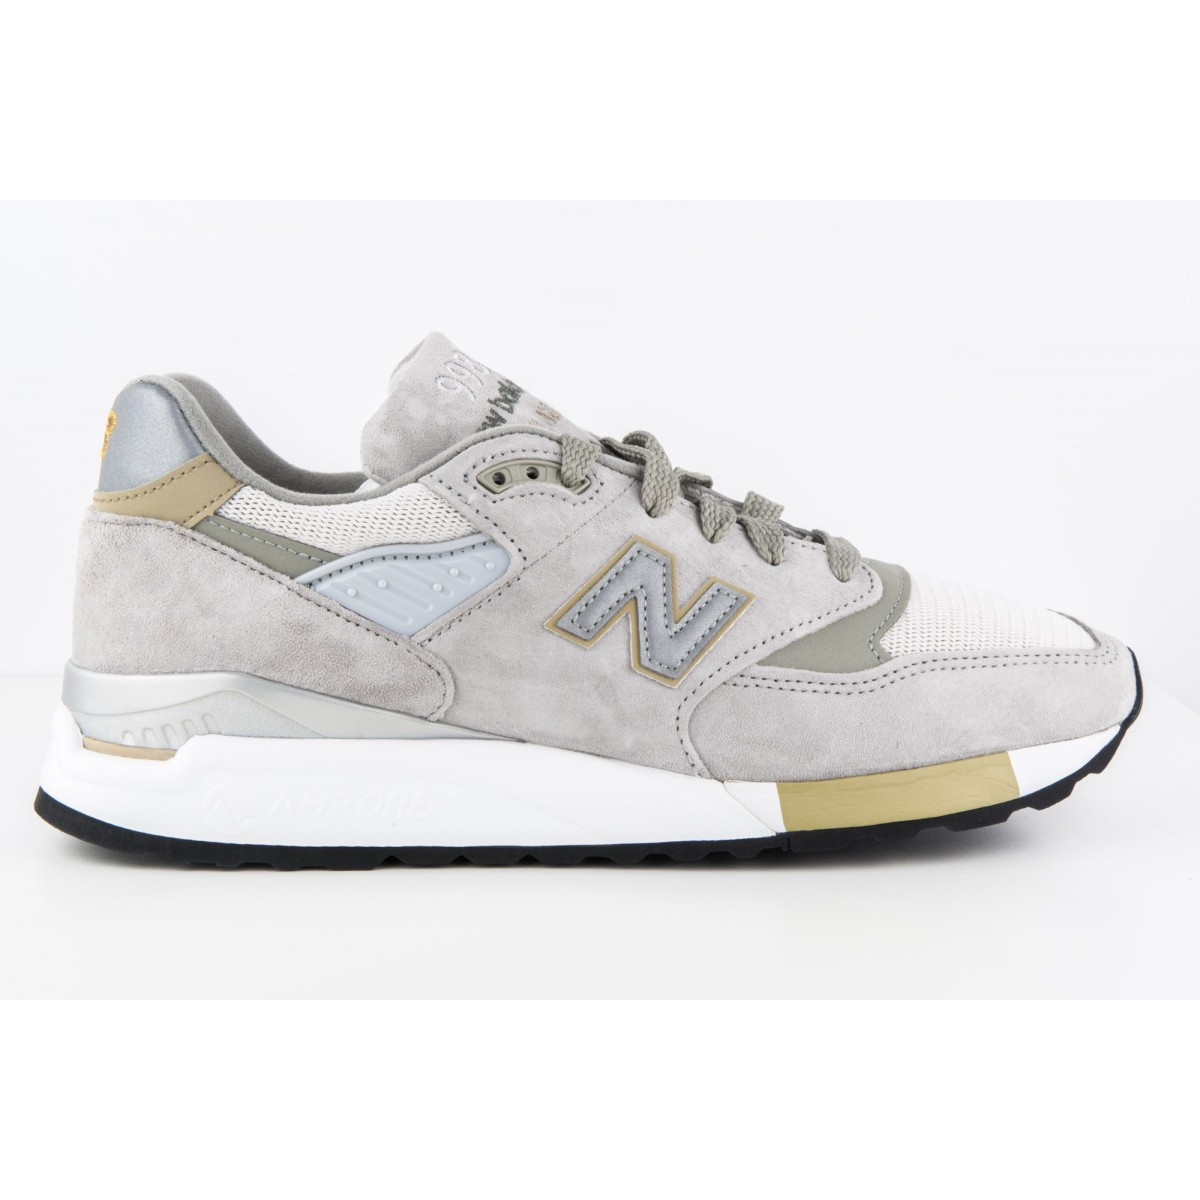 Shoes New Balance - M998 Cel Made In Usa Limited Edition